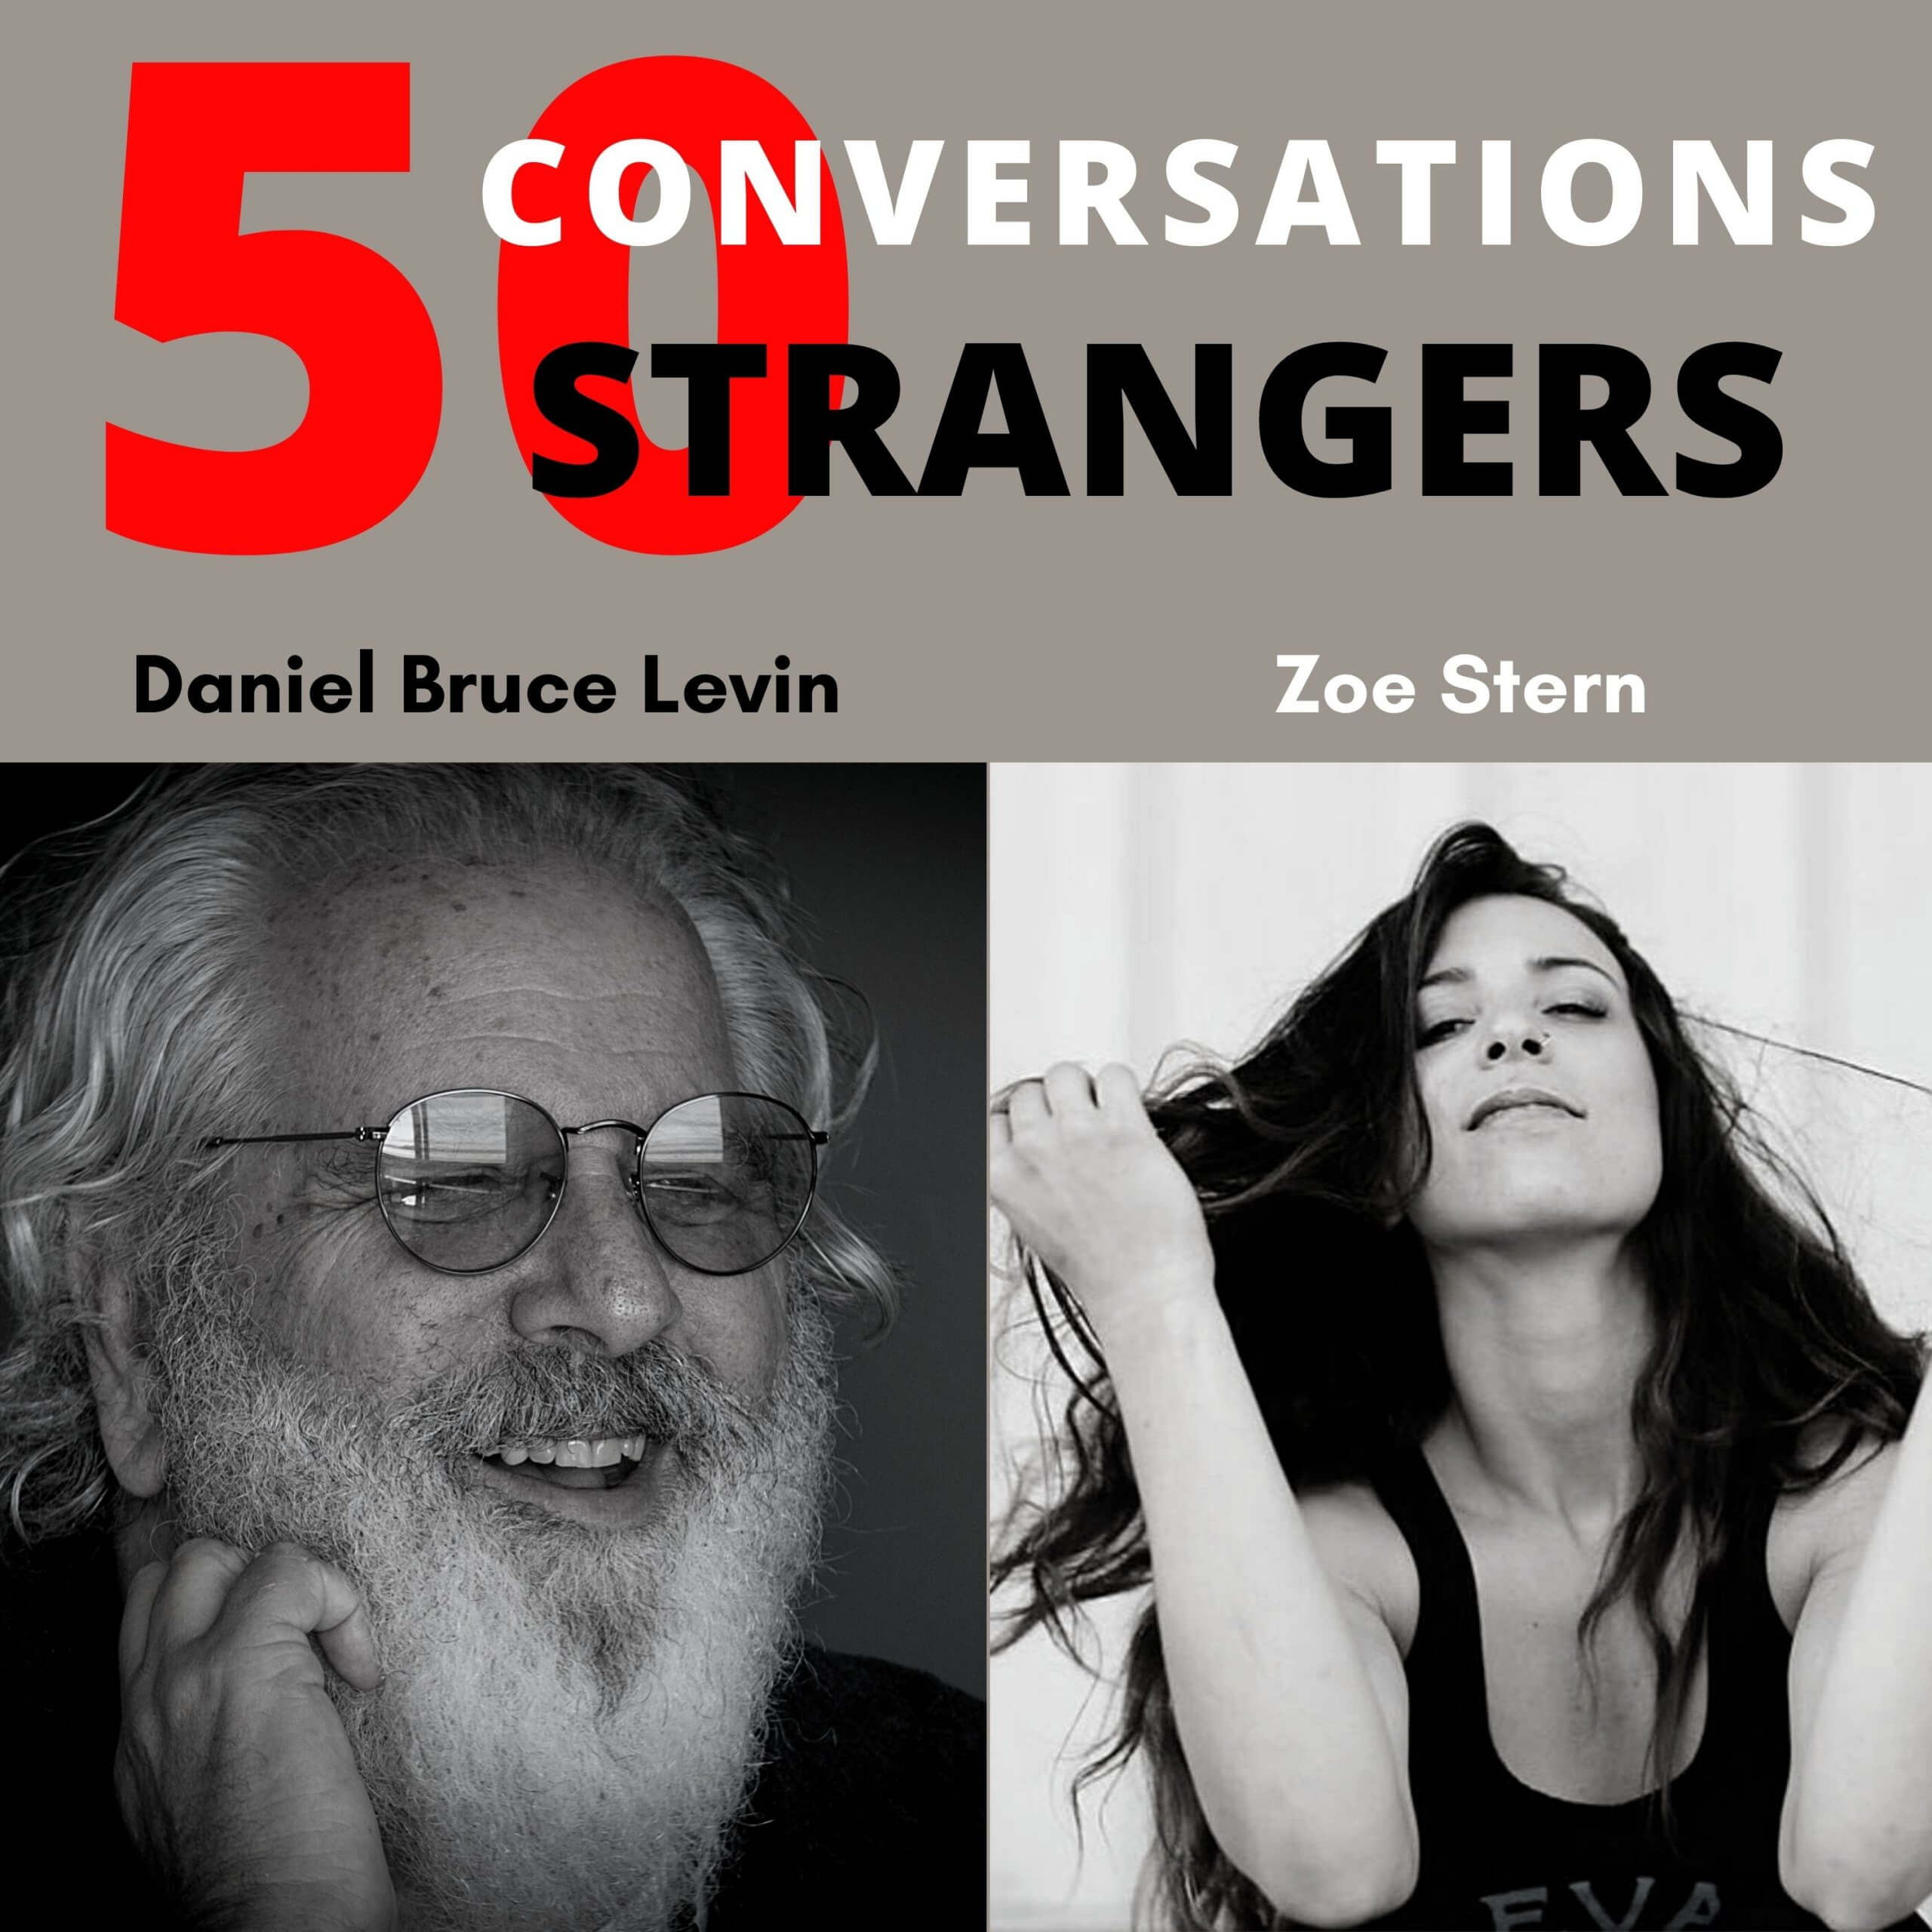 50 Conversations with 50 Strangers with Zoe Stern